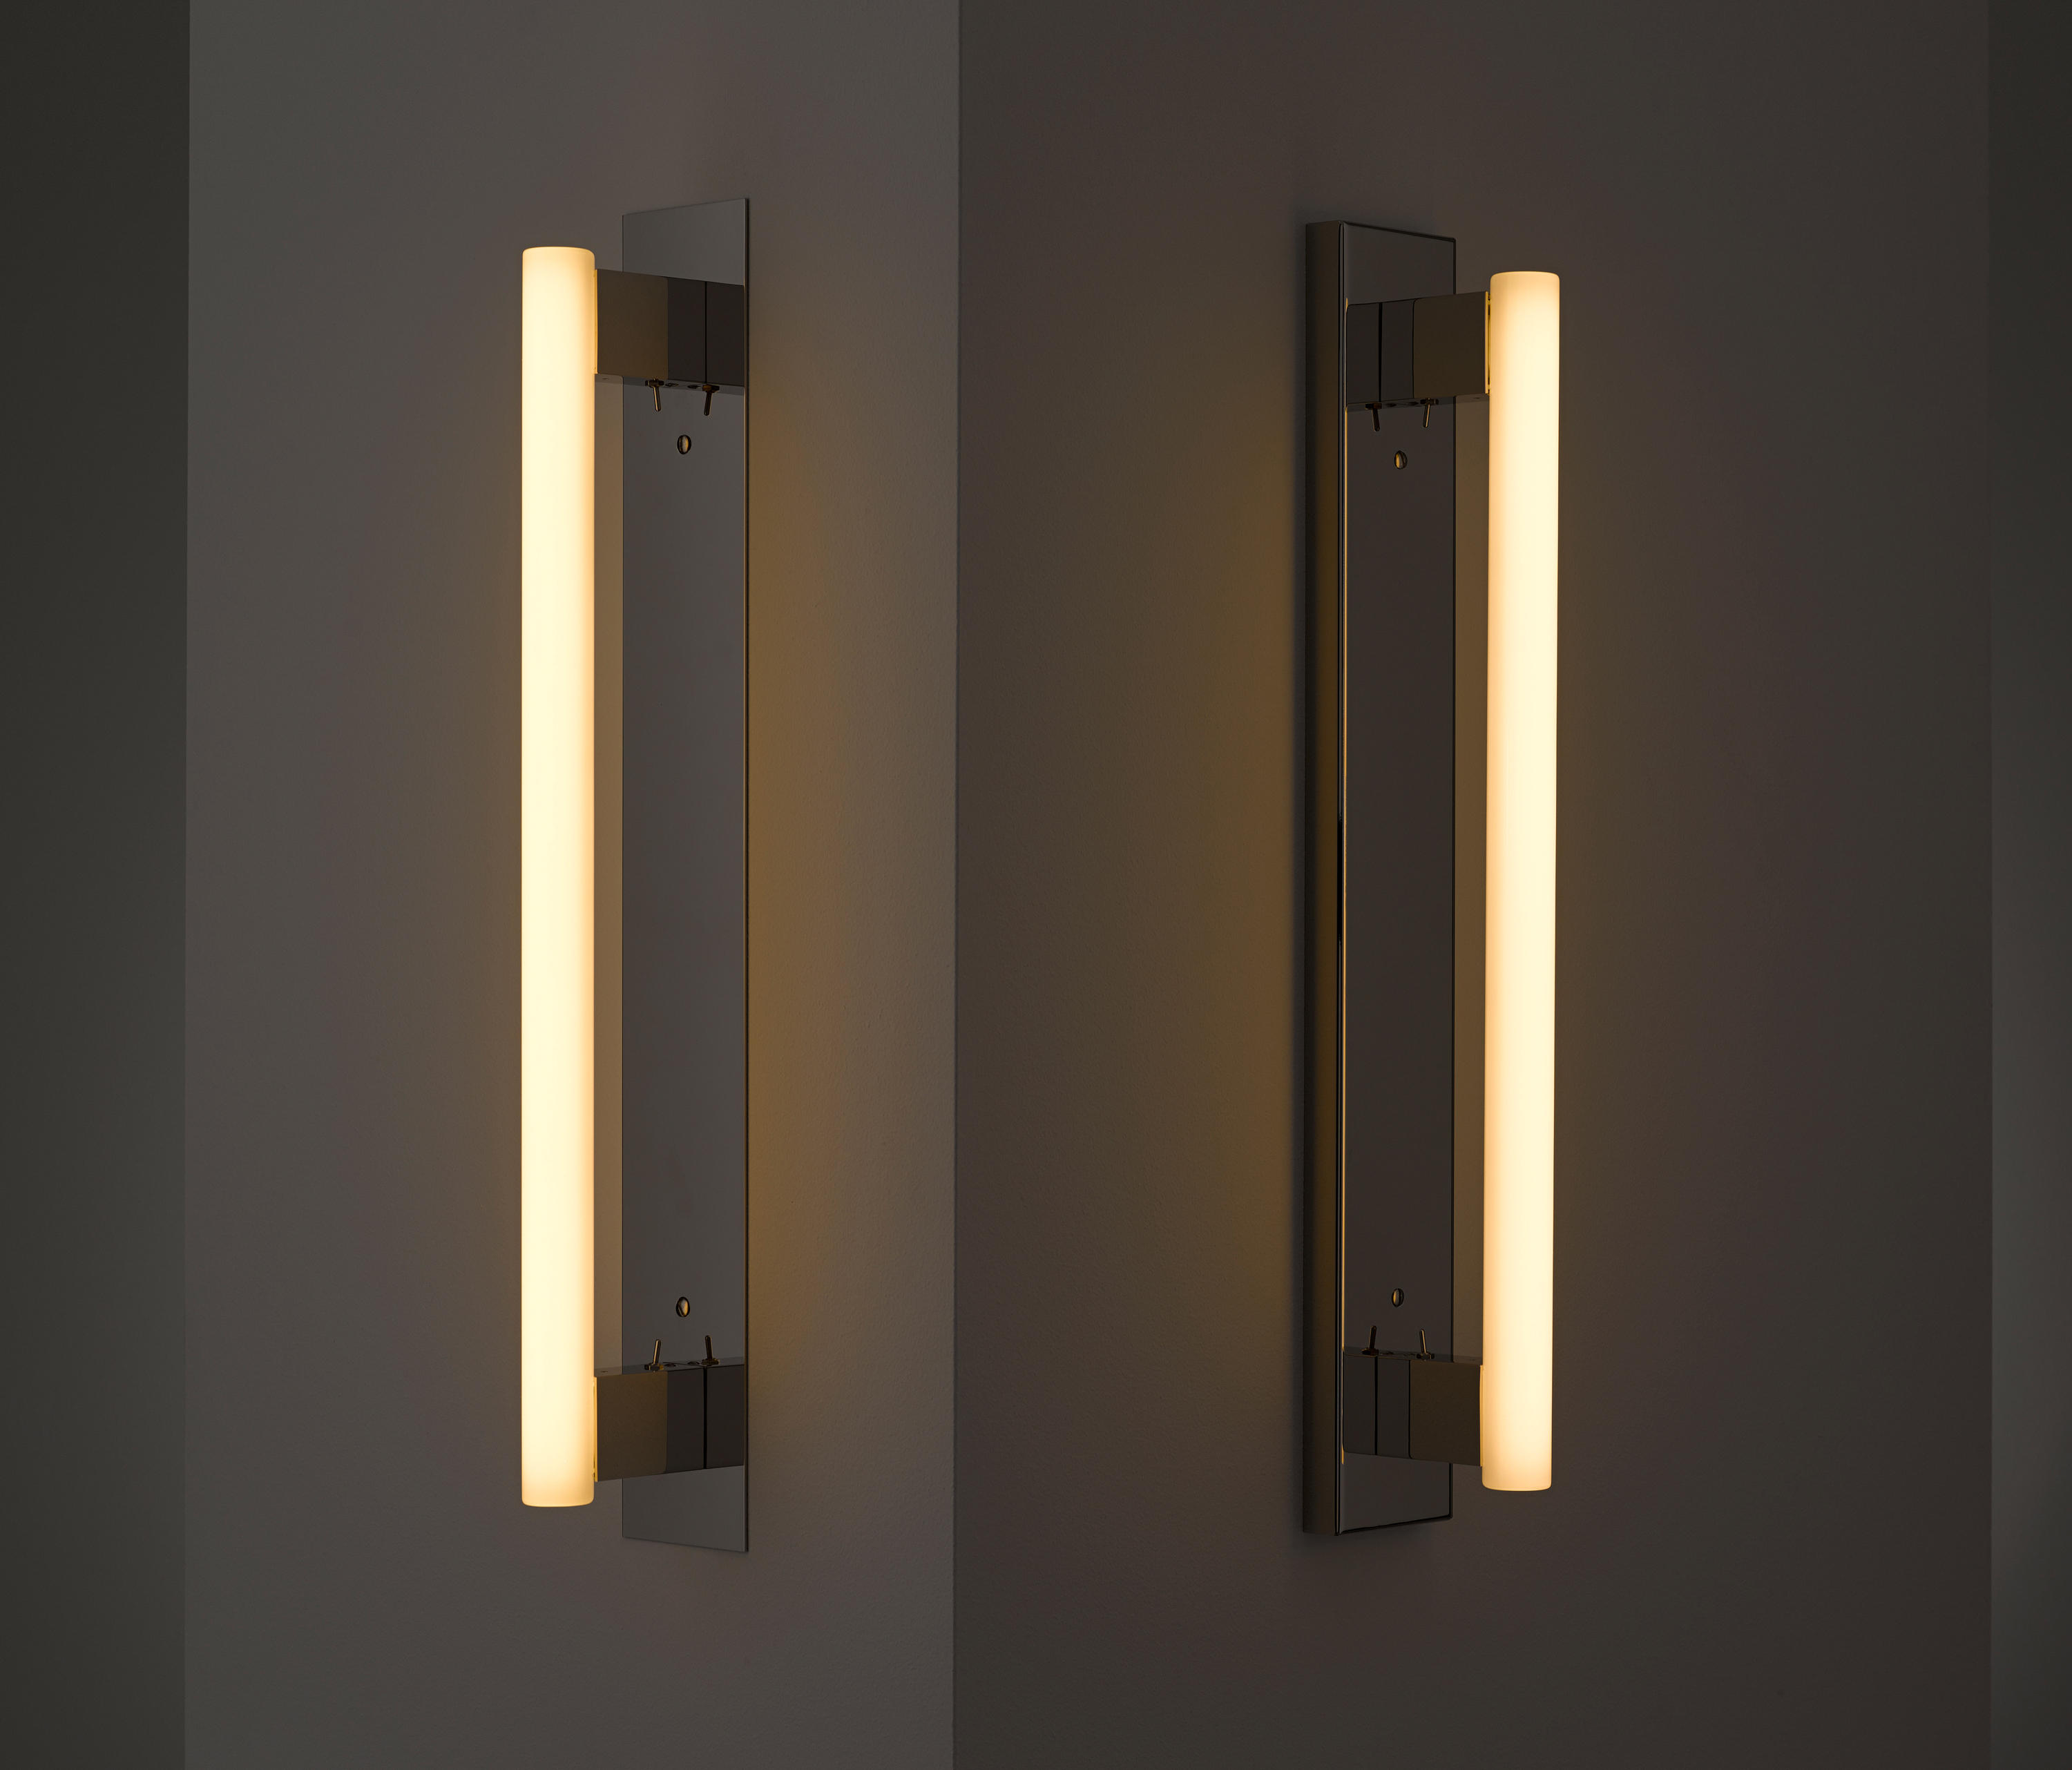 Mea wall light with base wall lights from kaia architonic mea wall light with base by kaia aloadofball Gallery